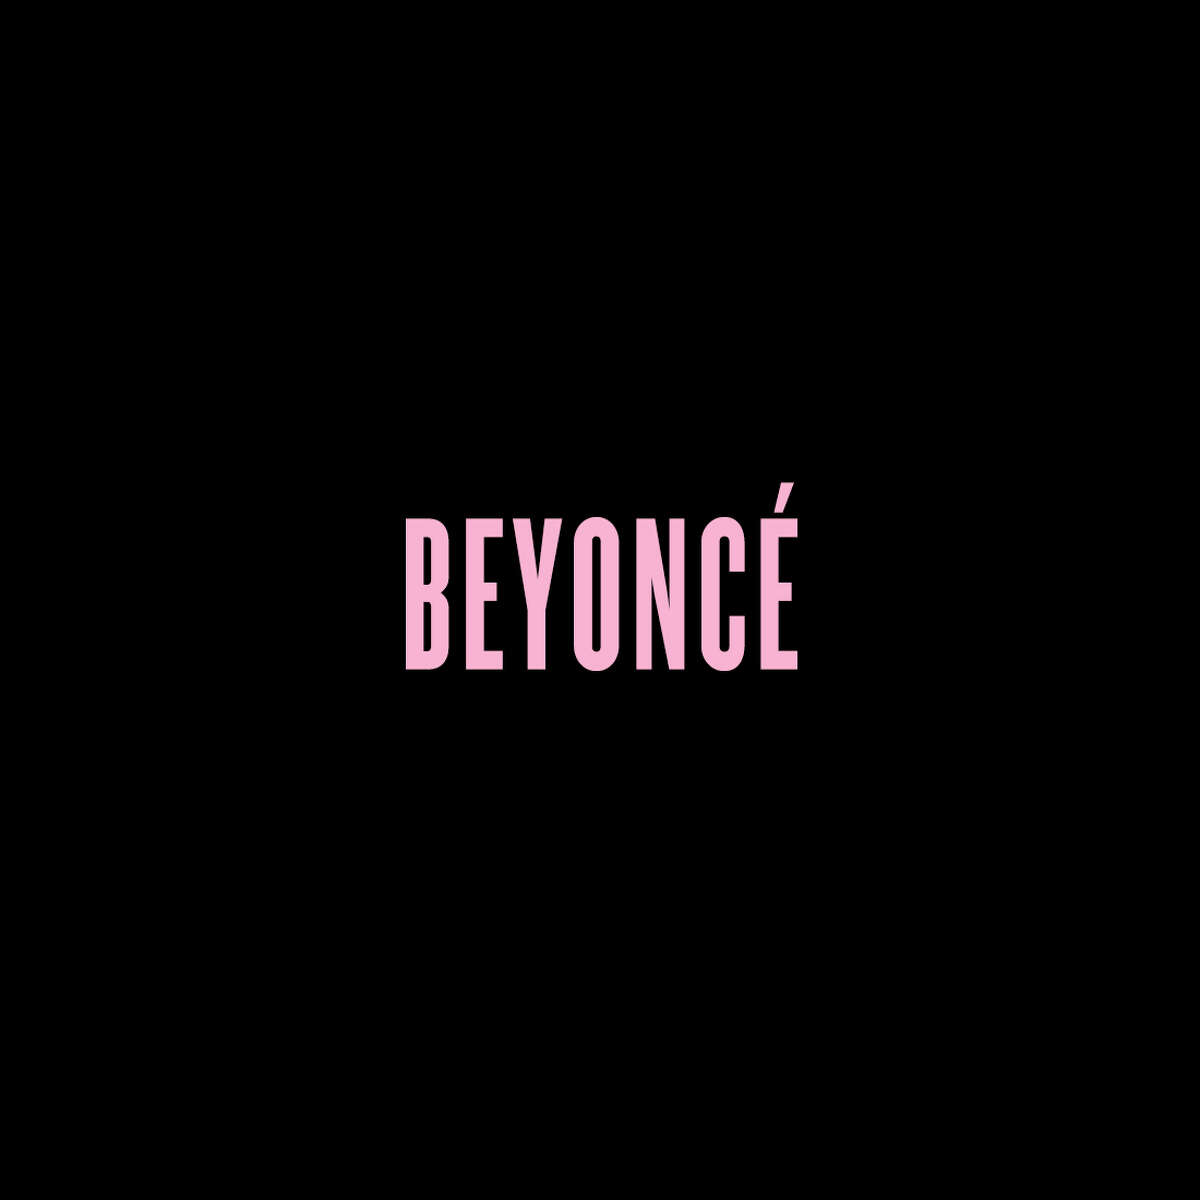 Album art for the self-titled fifth solo album from Beyonc